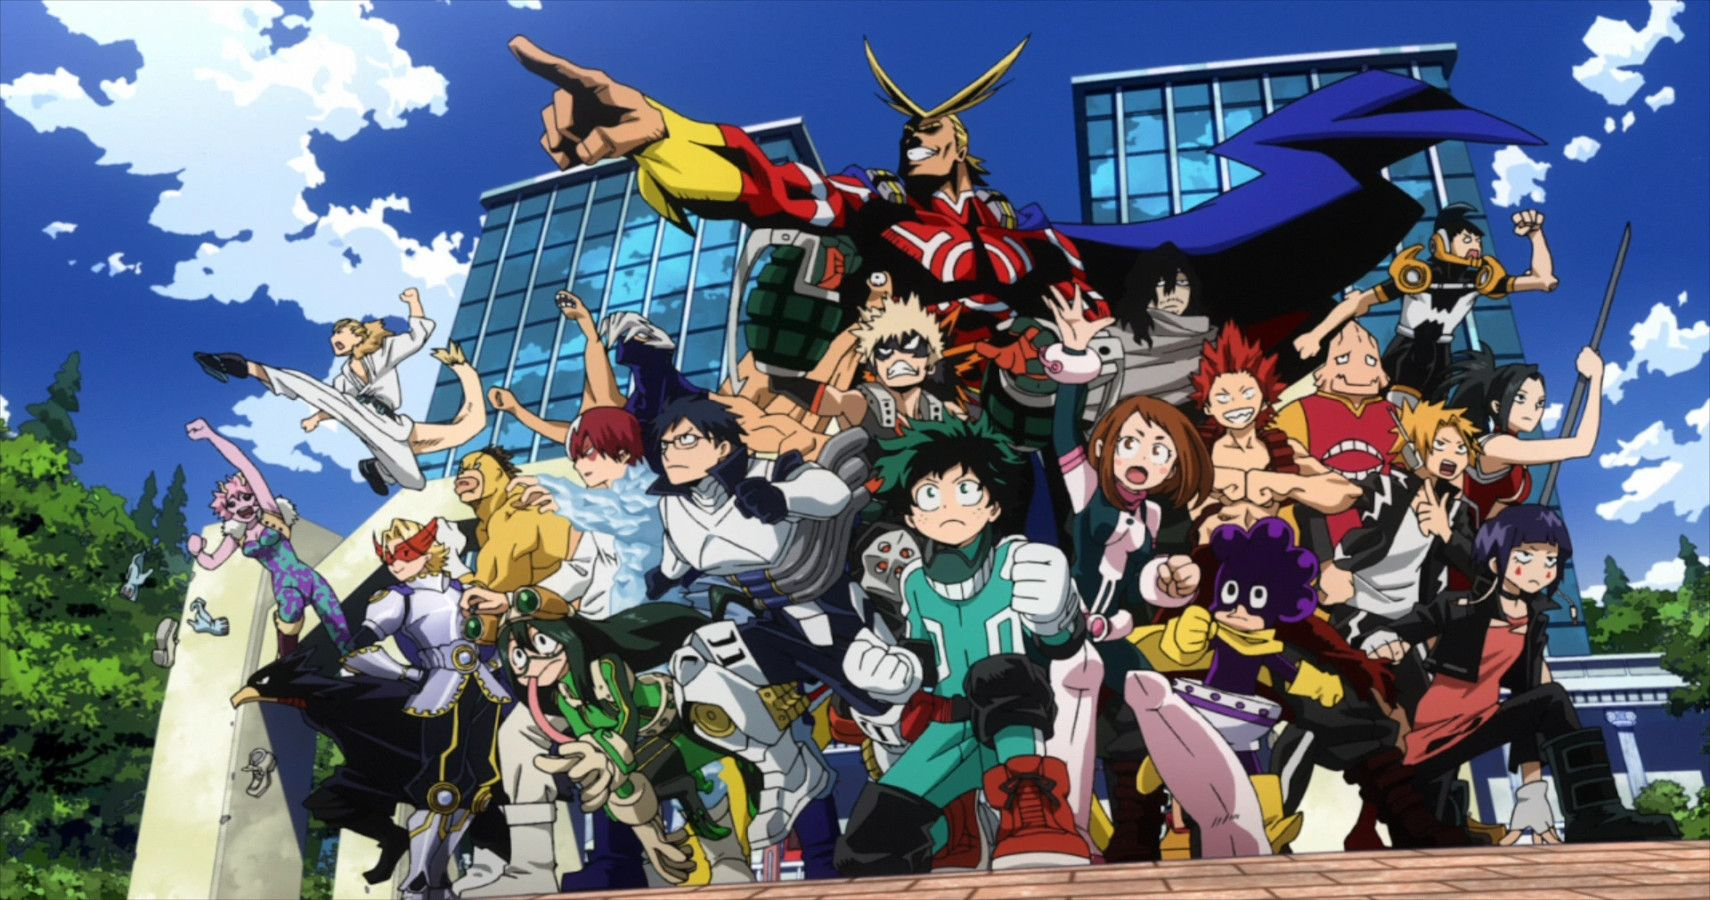 www.cbr.comMy Hero Academia: 10 Actors Who Should Play The Main Characters In A Live-Action Movie